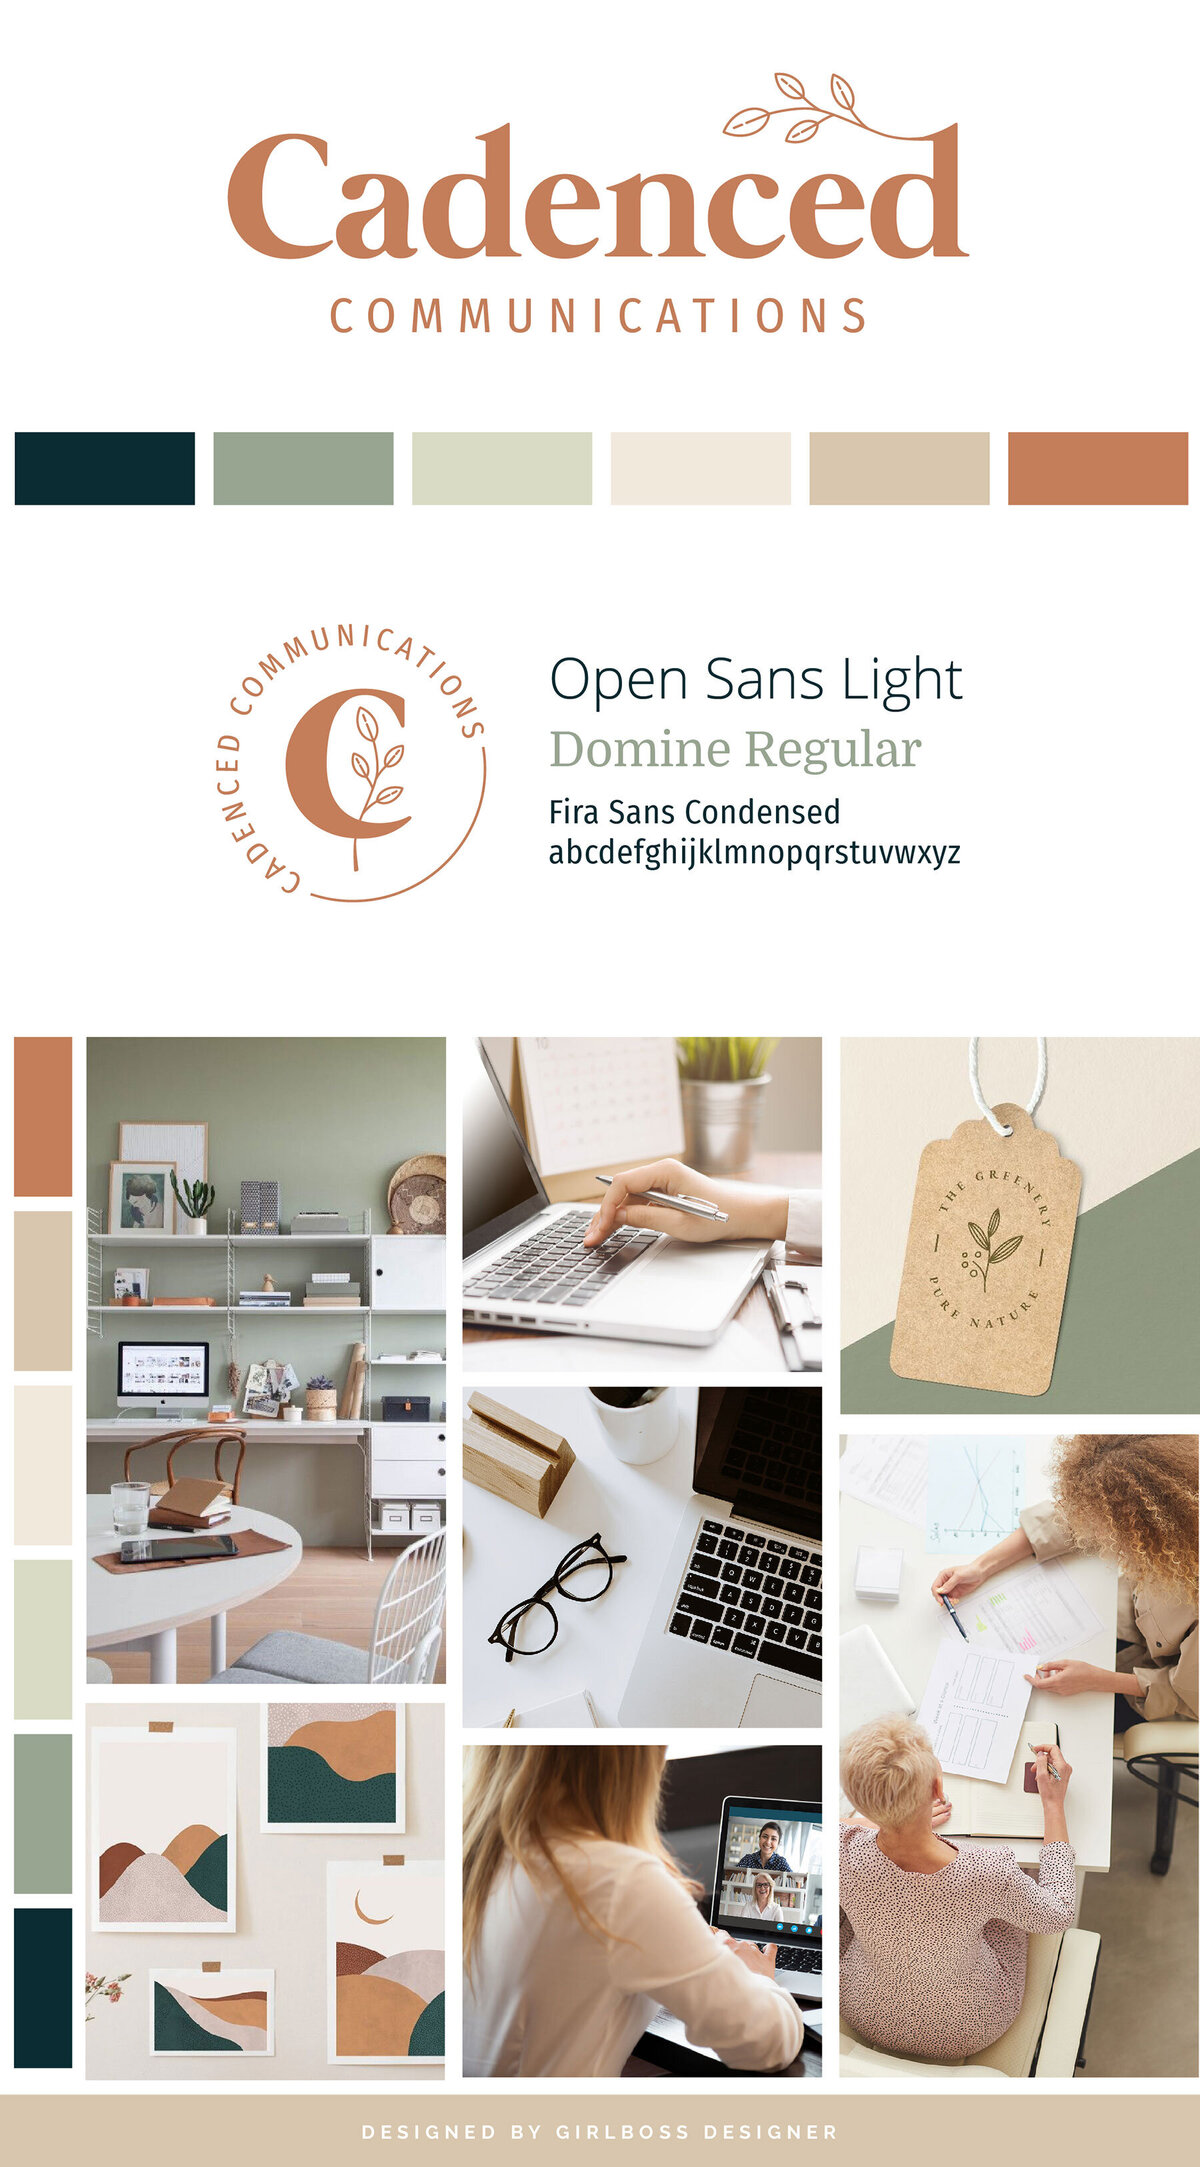 Girlboss-Designer-ClientInsp-ColorPalette-Cadenced-Communications-01